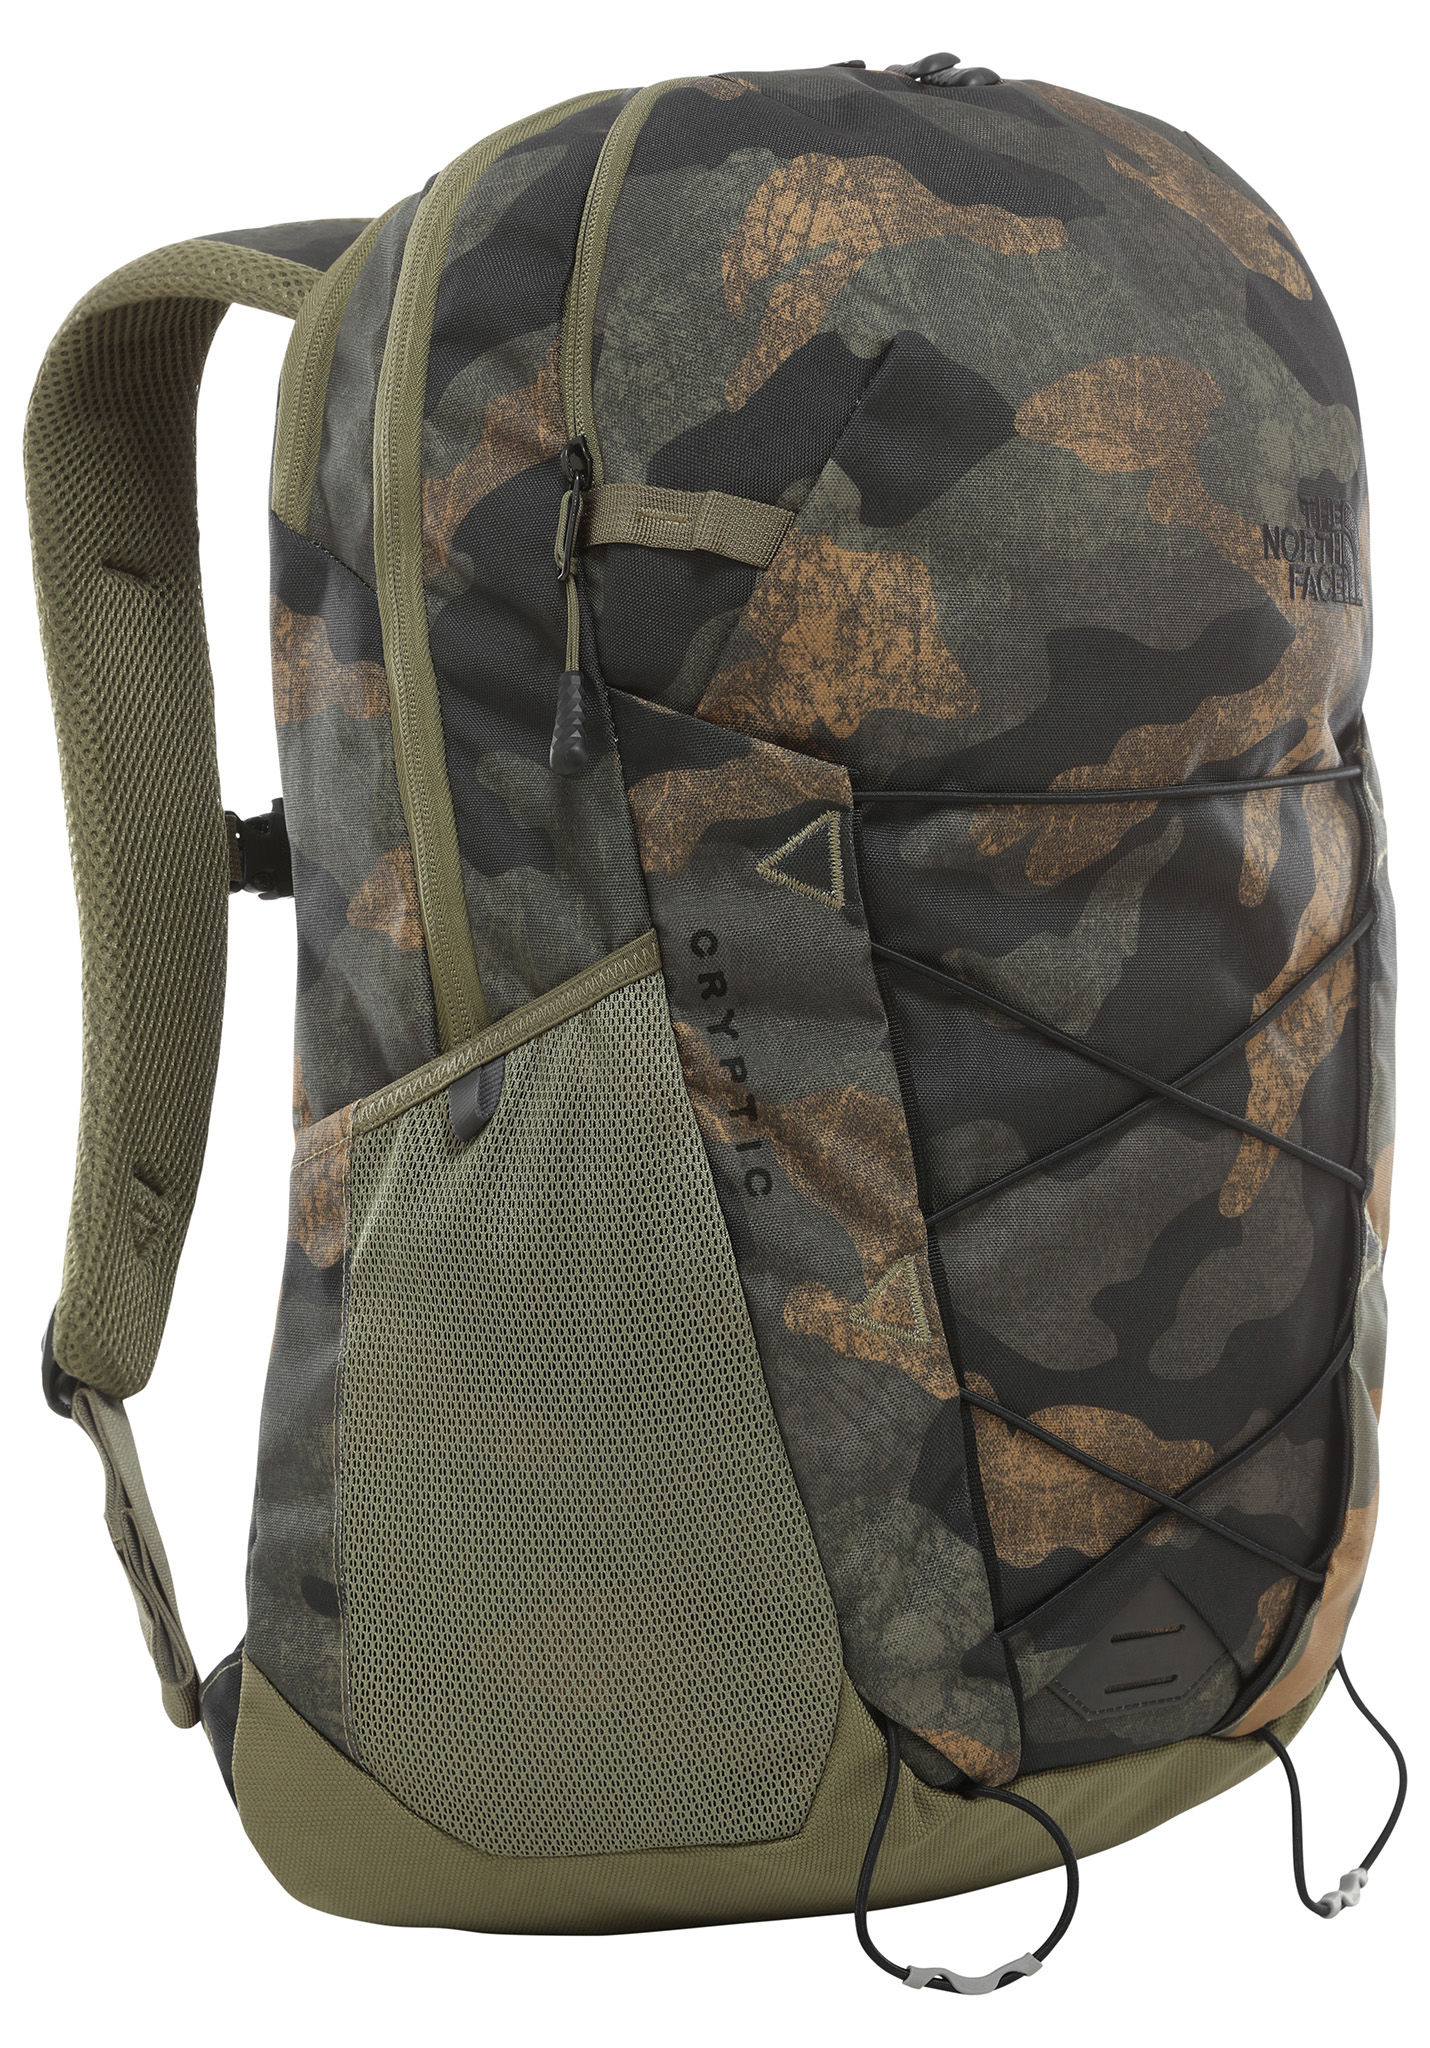 THE NORTH FACE Cryptic Sac à dos Camouflage